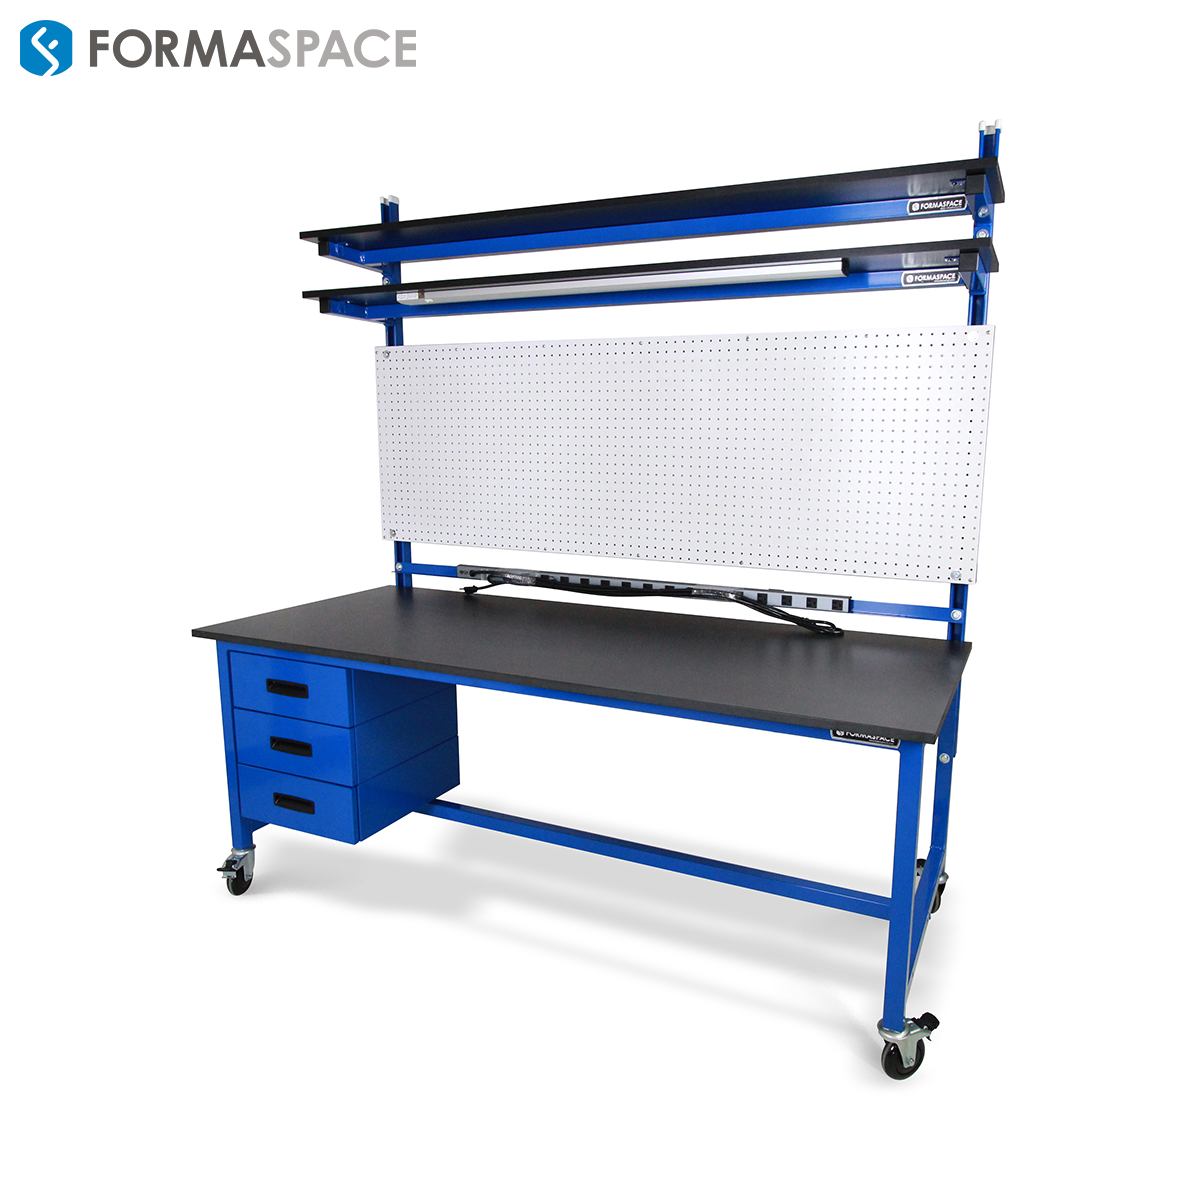 Tall pegboard workbench for tool organization